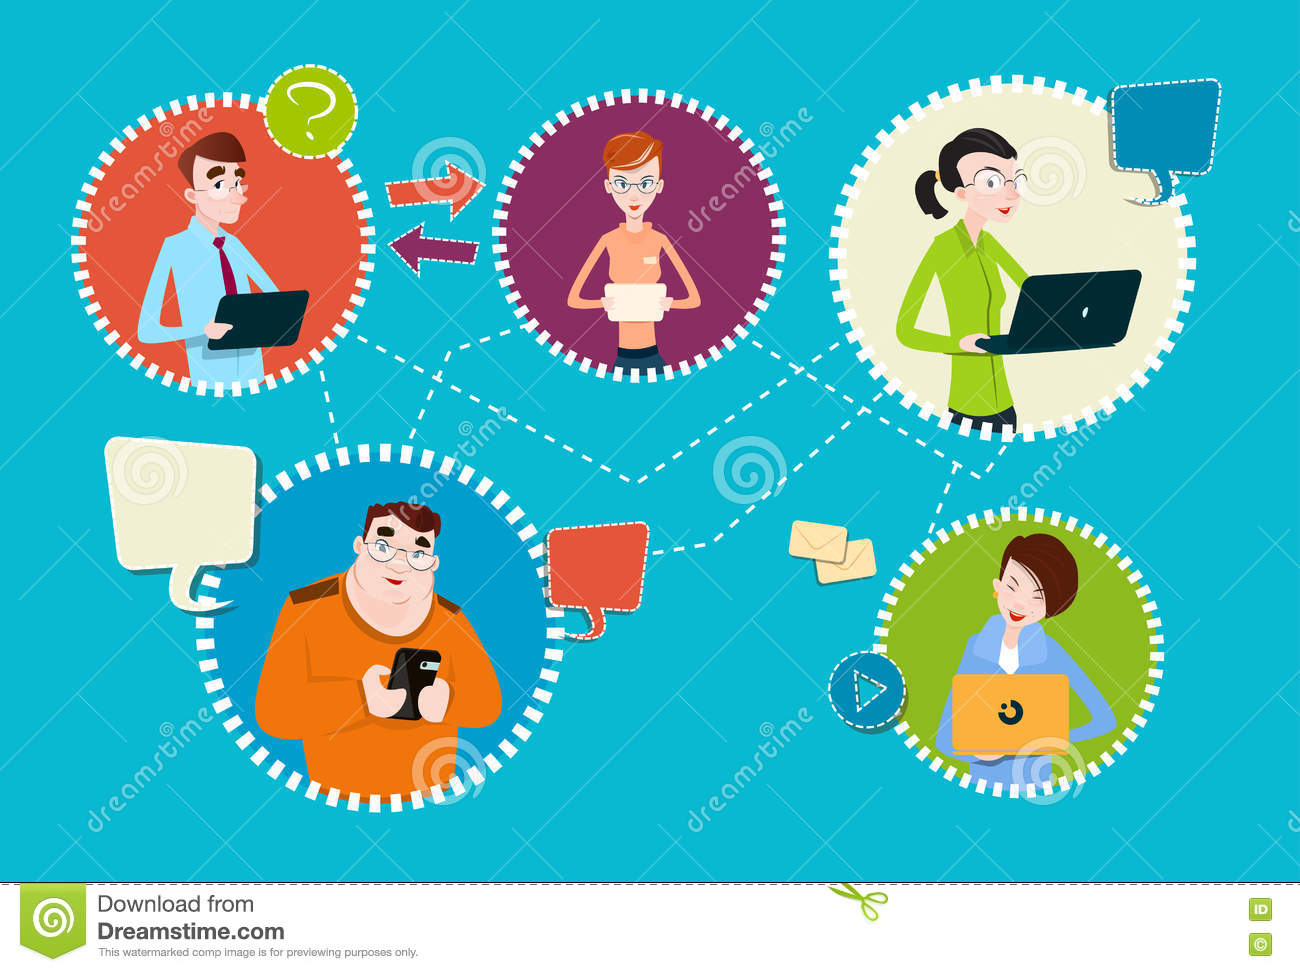 Social Media Communication People Group Internet Network Connection Stock Vector - Illustration of network. concept: 78276360